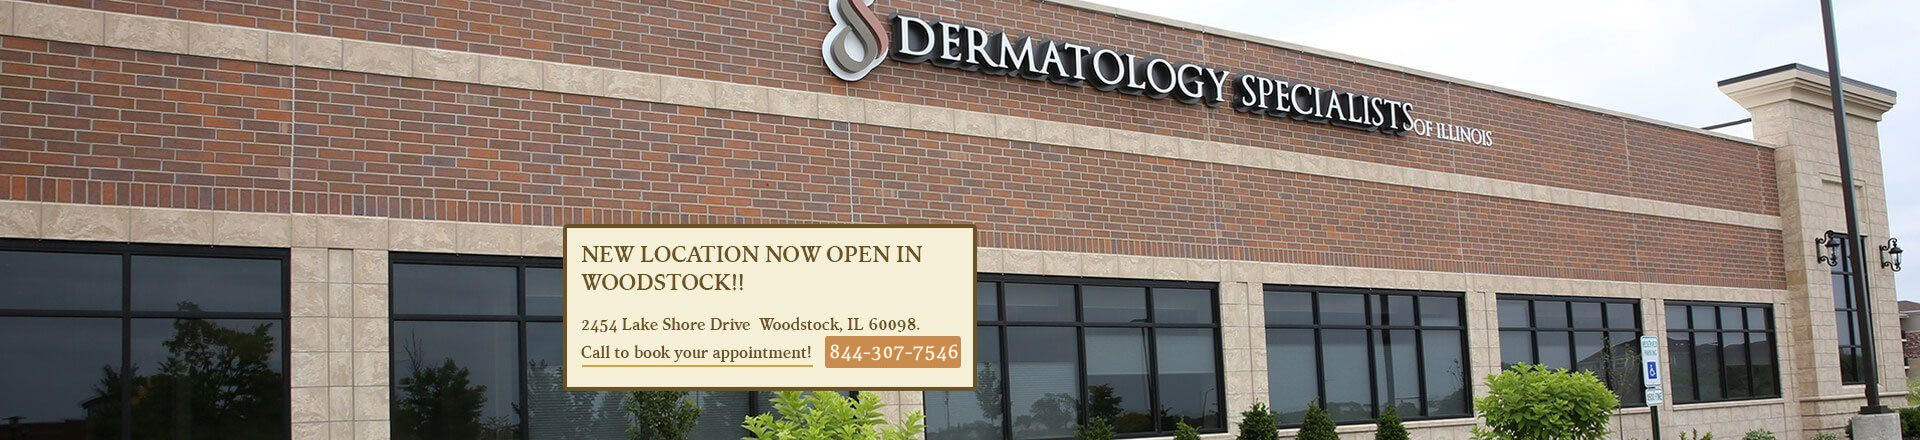 Contact, Dermatology Specialists of Illinois